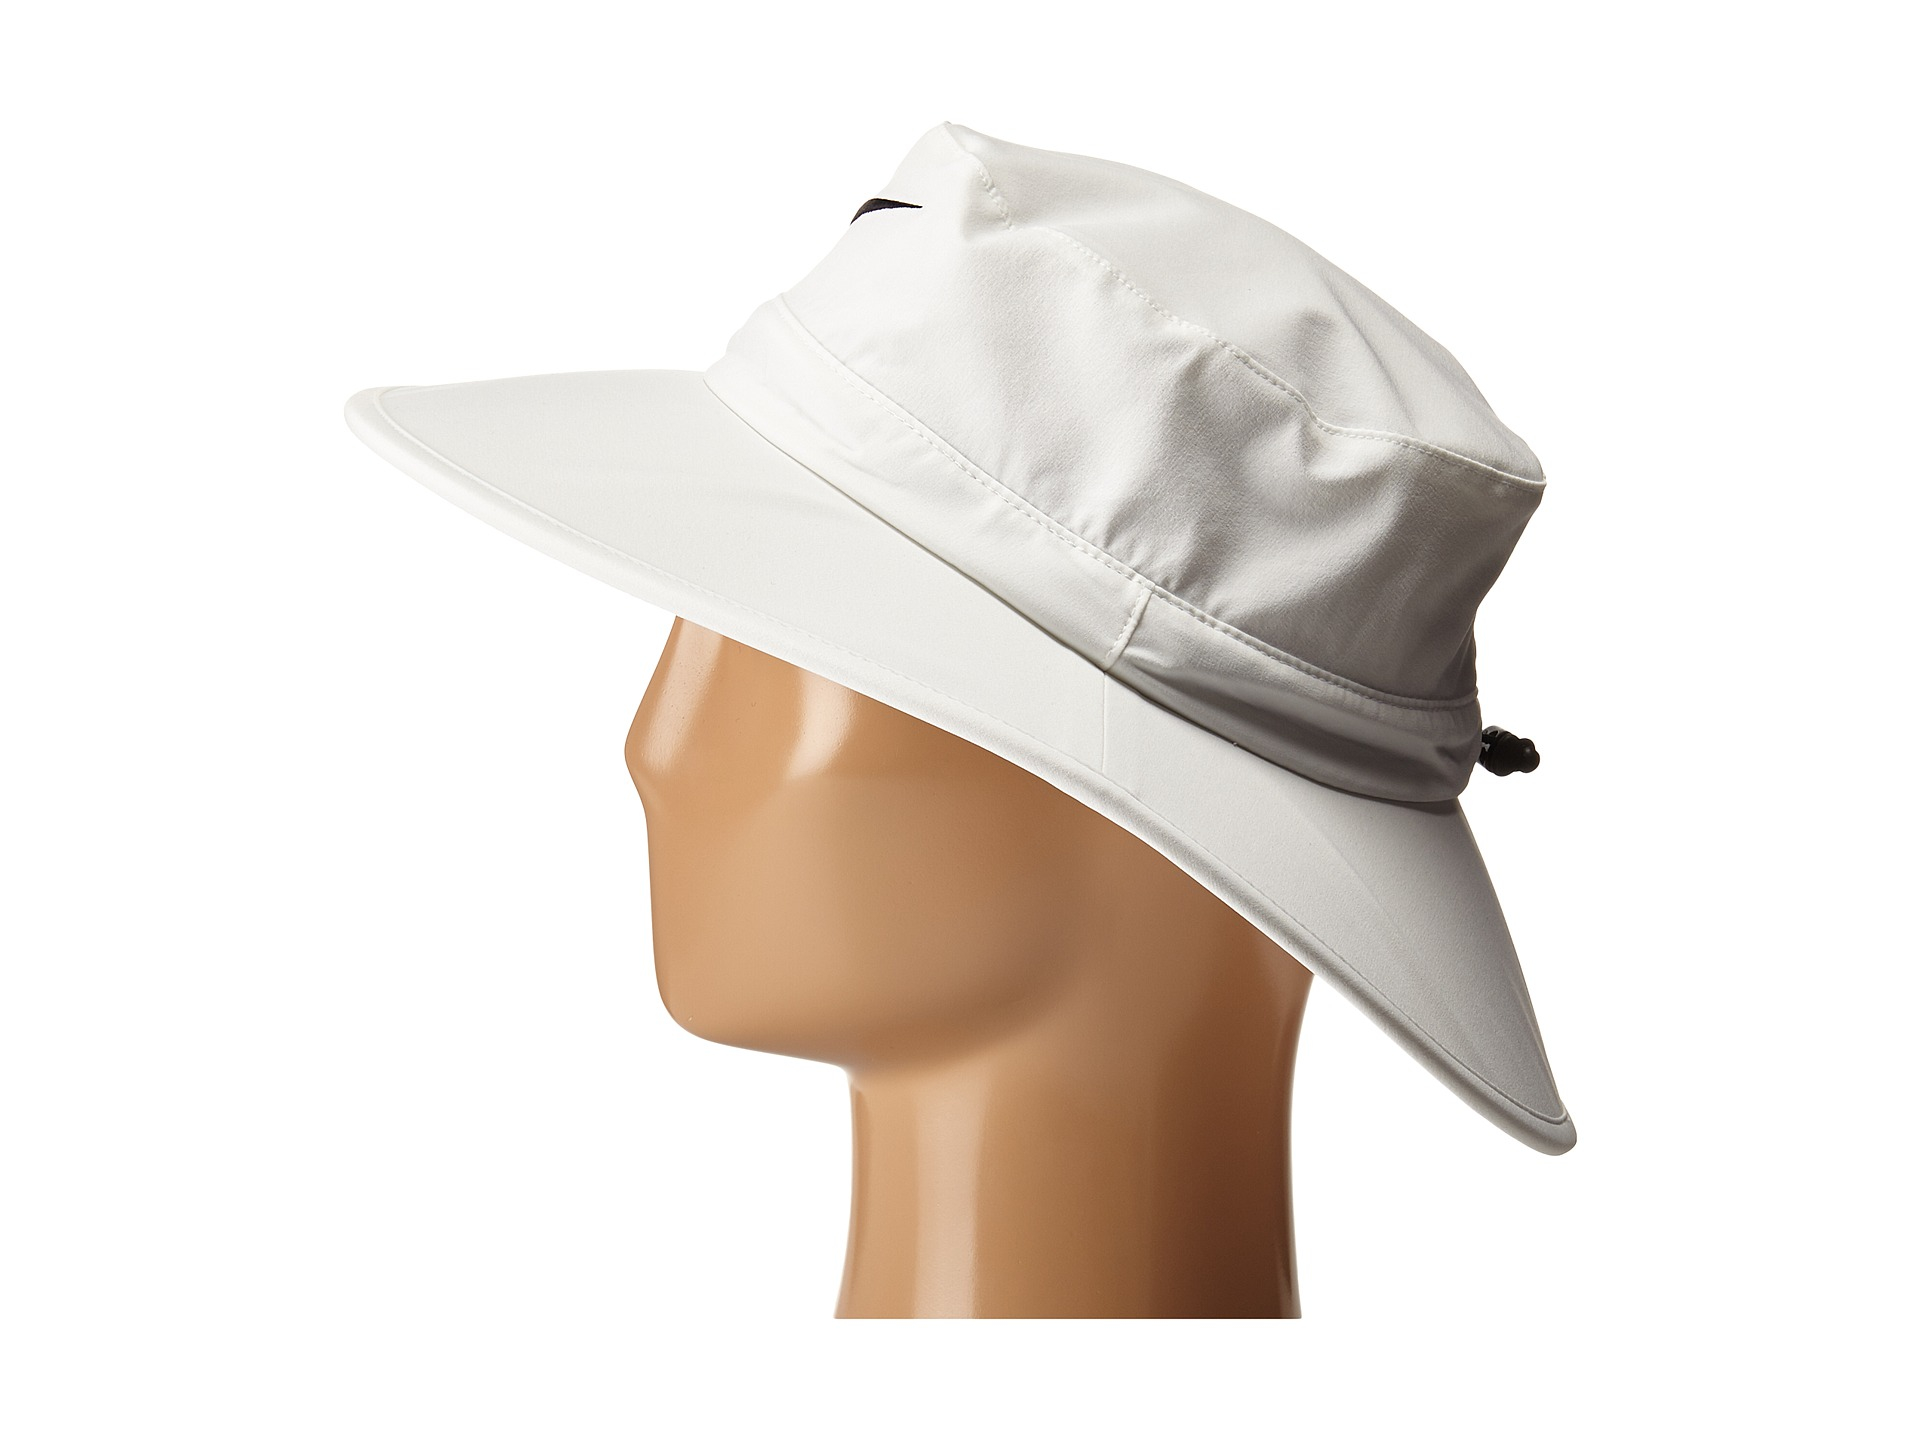 ... hot sale 331e0 07bbe Lyst - Nike Sun Protect Bucket Cap in White for  Men ... 3c824ee64ac